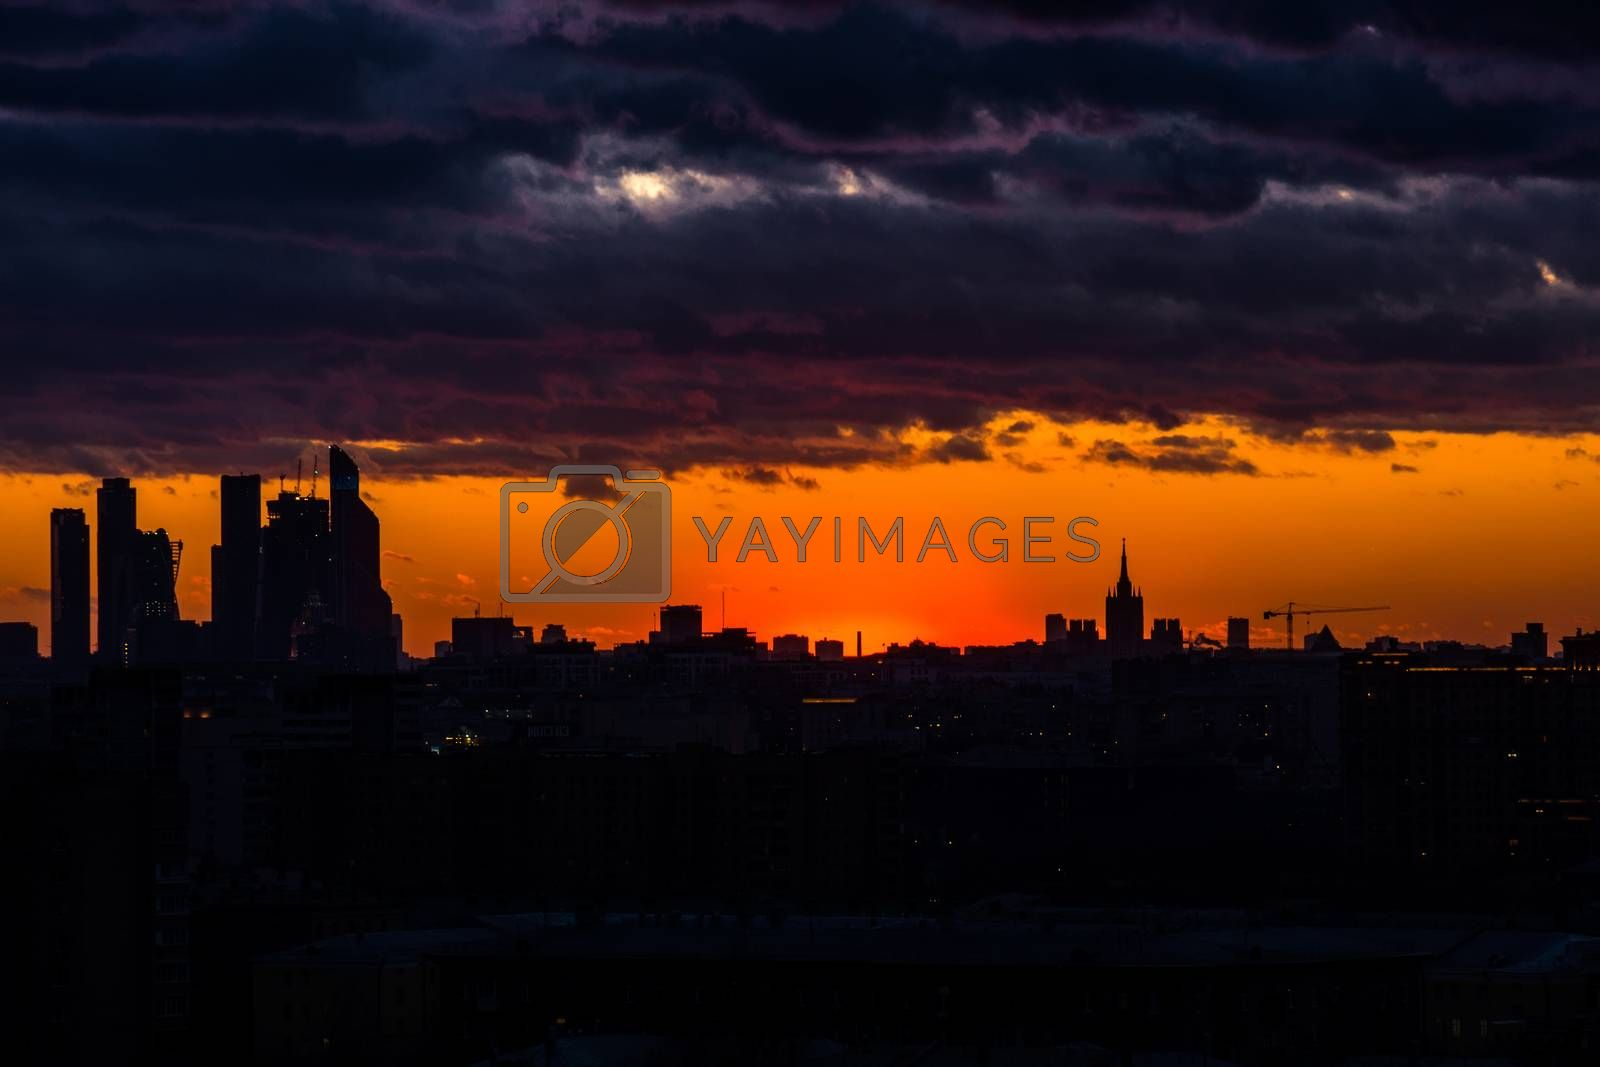 The photo depicts the silhouette of the city